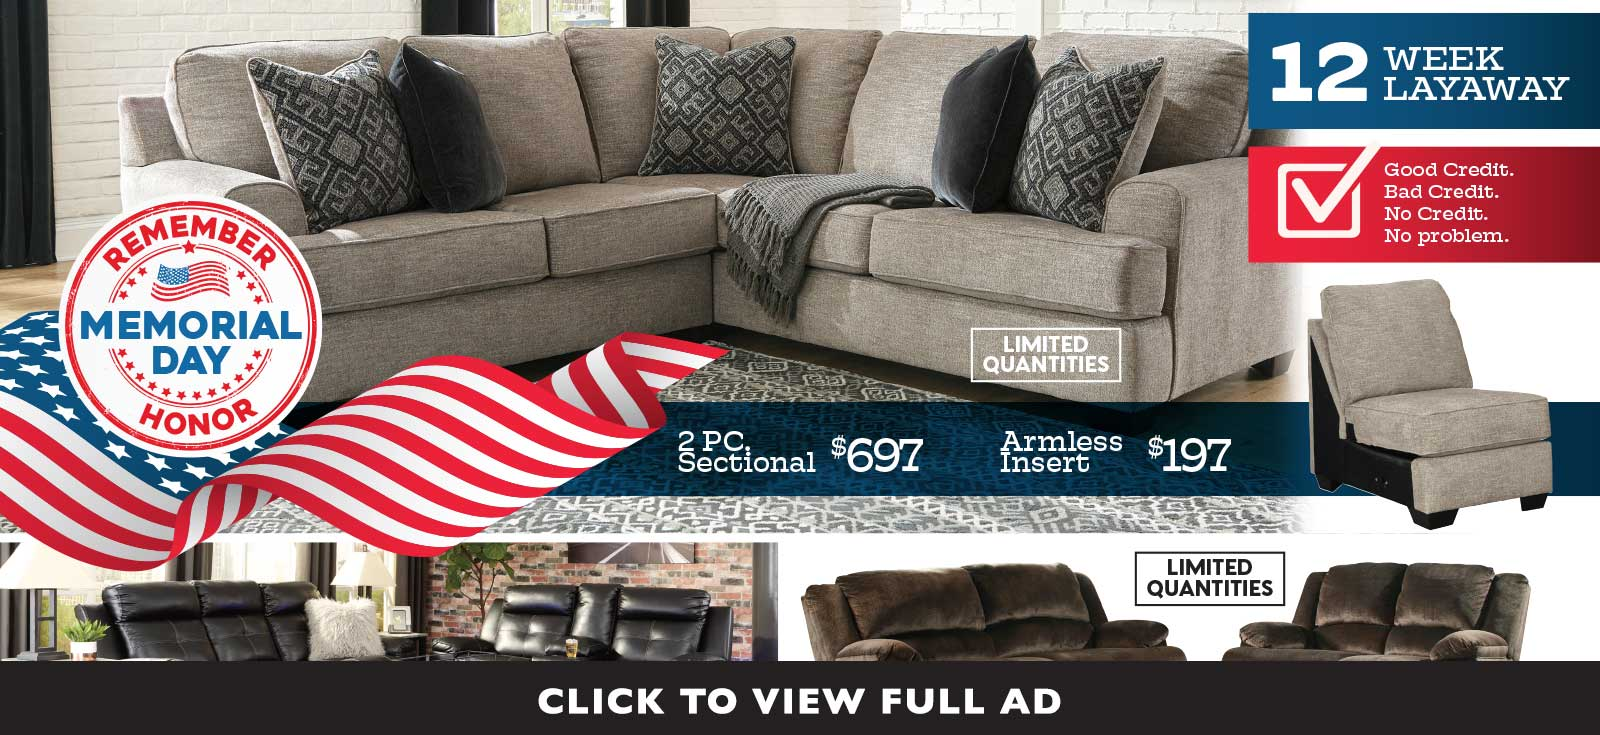 Sofa Express Locations Outstanding Home Furniture Store Offering Big Savings Fresno Ca